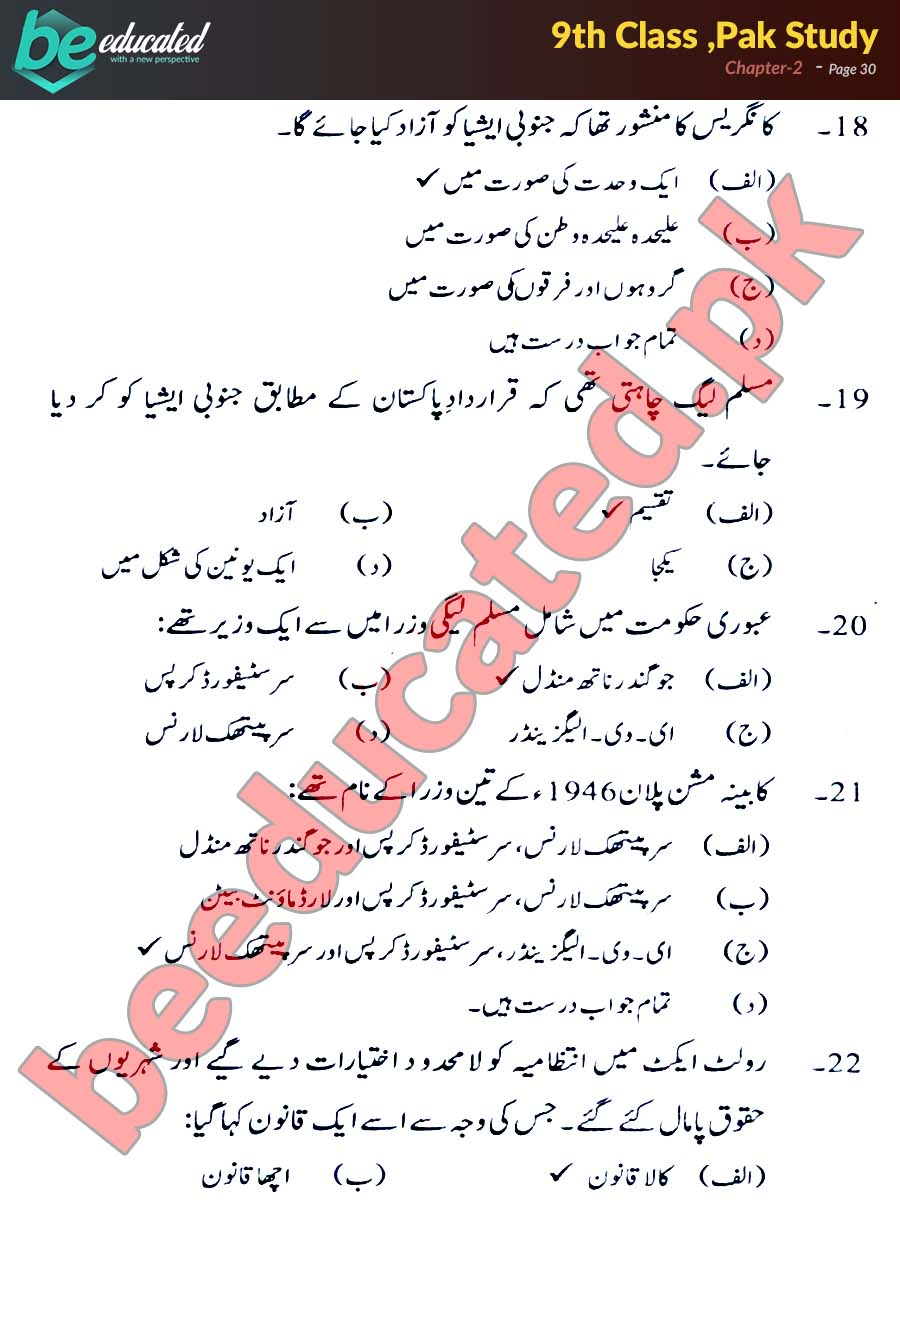 Chapter 2 Pak Studies 9th Class Notes - Matric Part 1 Notes